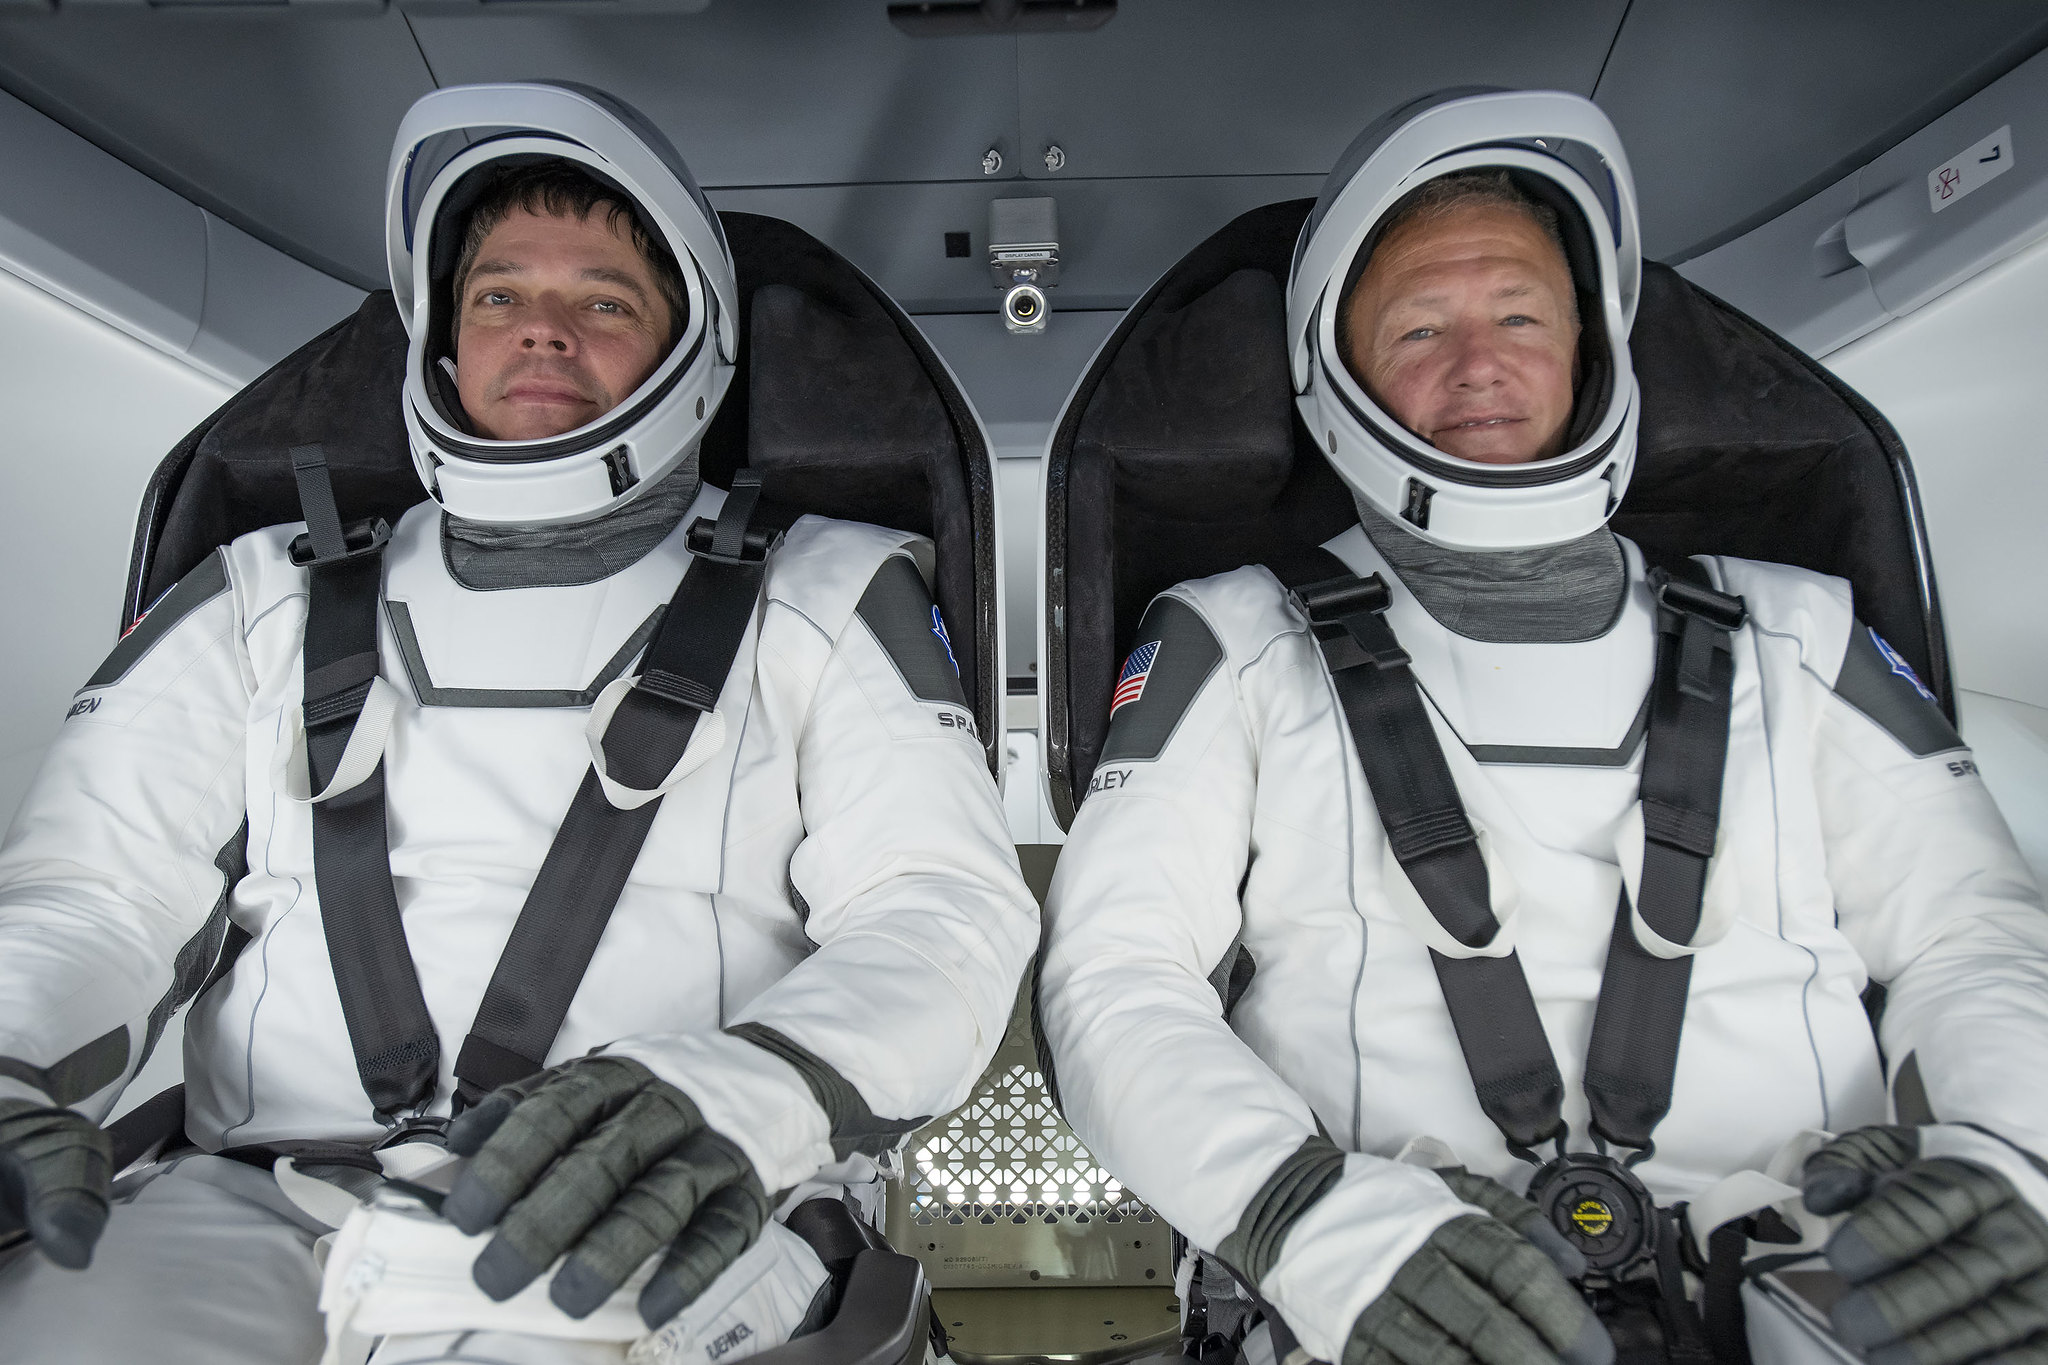 NASA astronauts Robert Behnken and Douglas Hurley will be the first astronauts to fly up into orbit aboard a commercial launch.